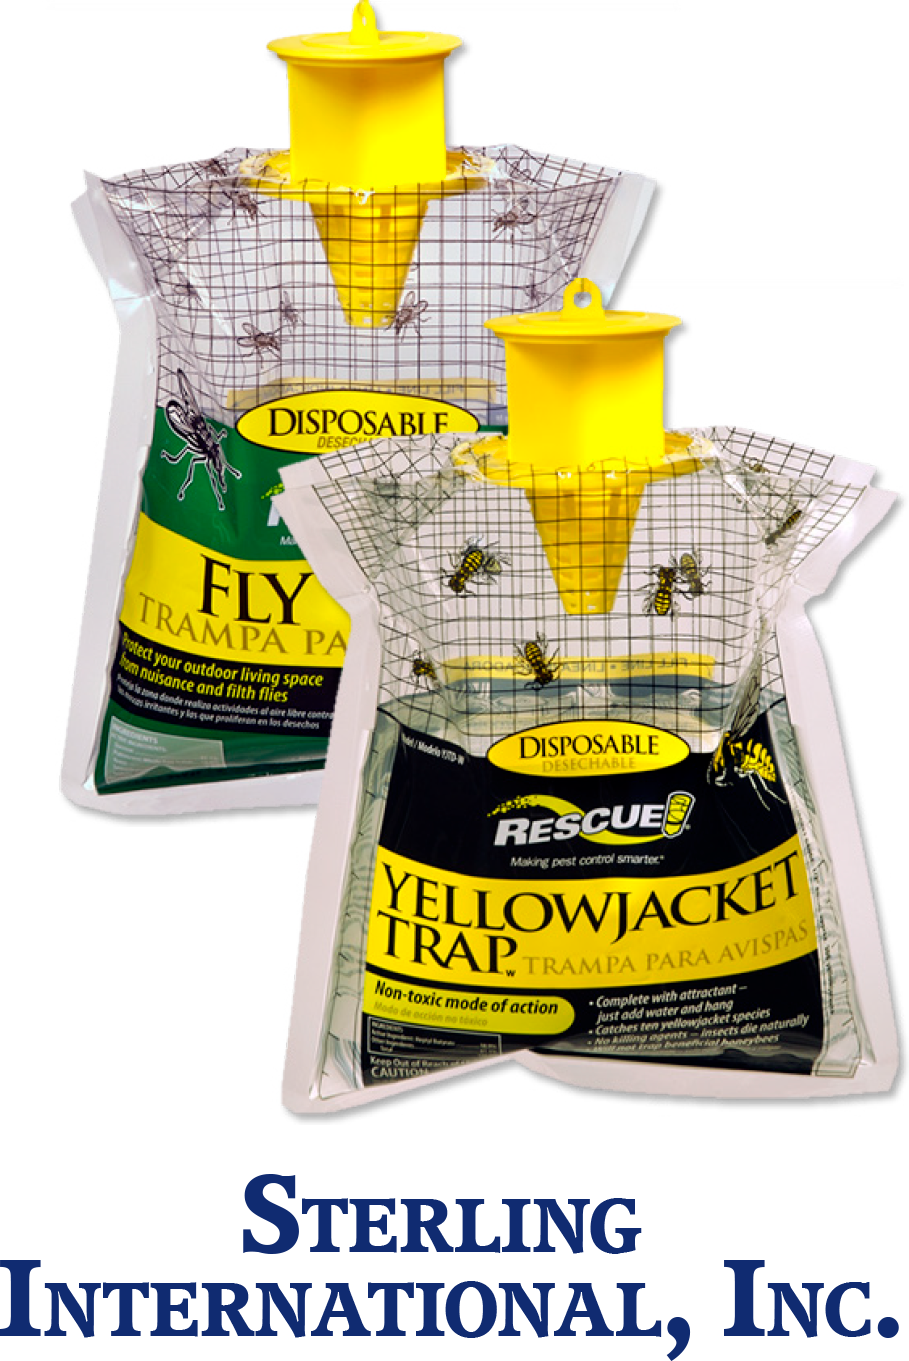 $4.99 each - Rescue!® Disposable Fly or Yellow Jacket Trap - Just add water & hang. Attractant enclosed-no mess. Completely disposable.